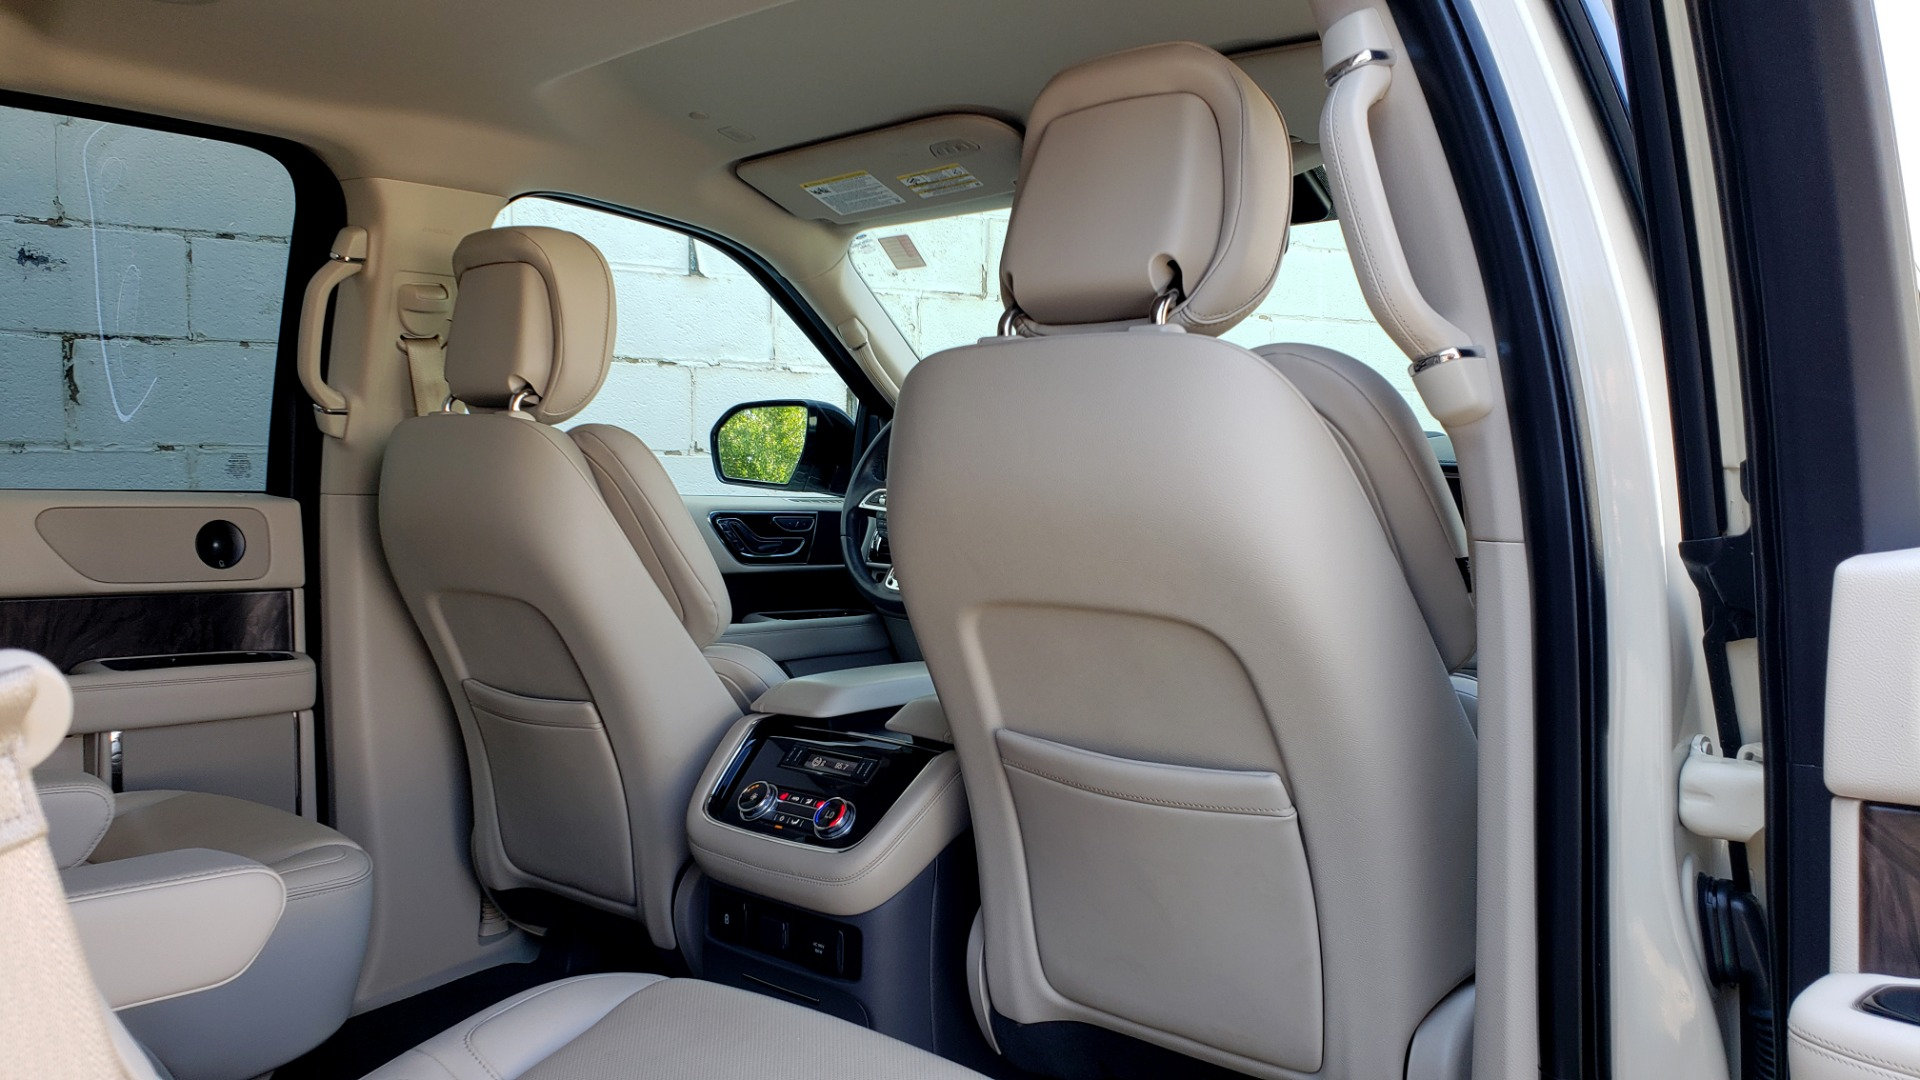 Used 2018 Lincoln NAVIGATOR PREMIERE 4X2 / TWIN-TURBO V6 / NAV / 3-ROW / REARVIEW for sale Sold at Formula Imports in Charlotte NC 28227 84